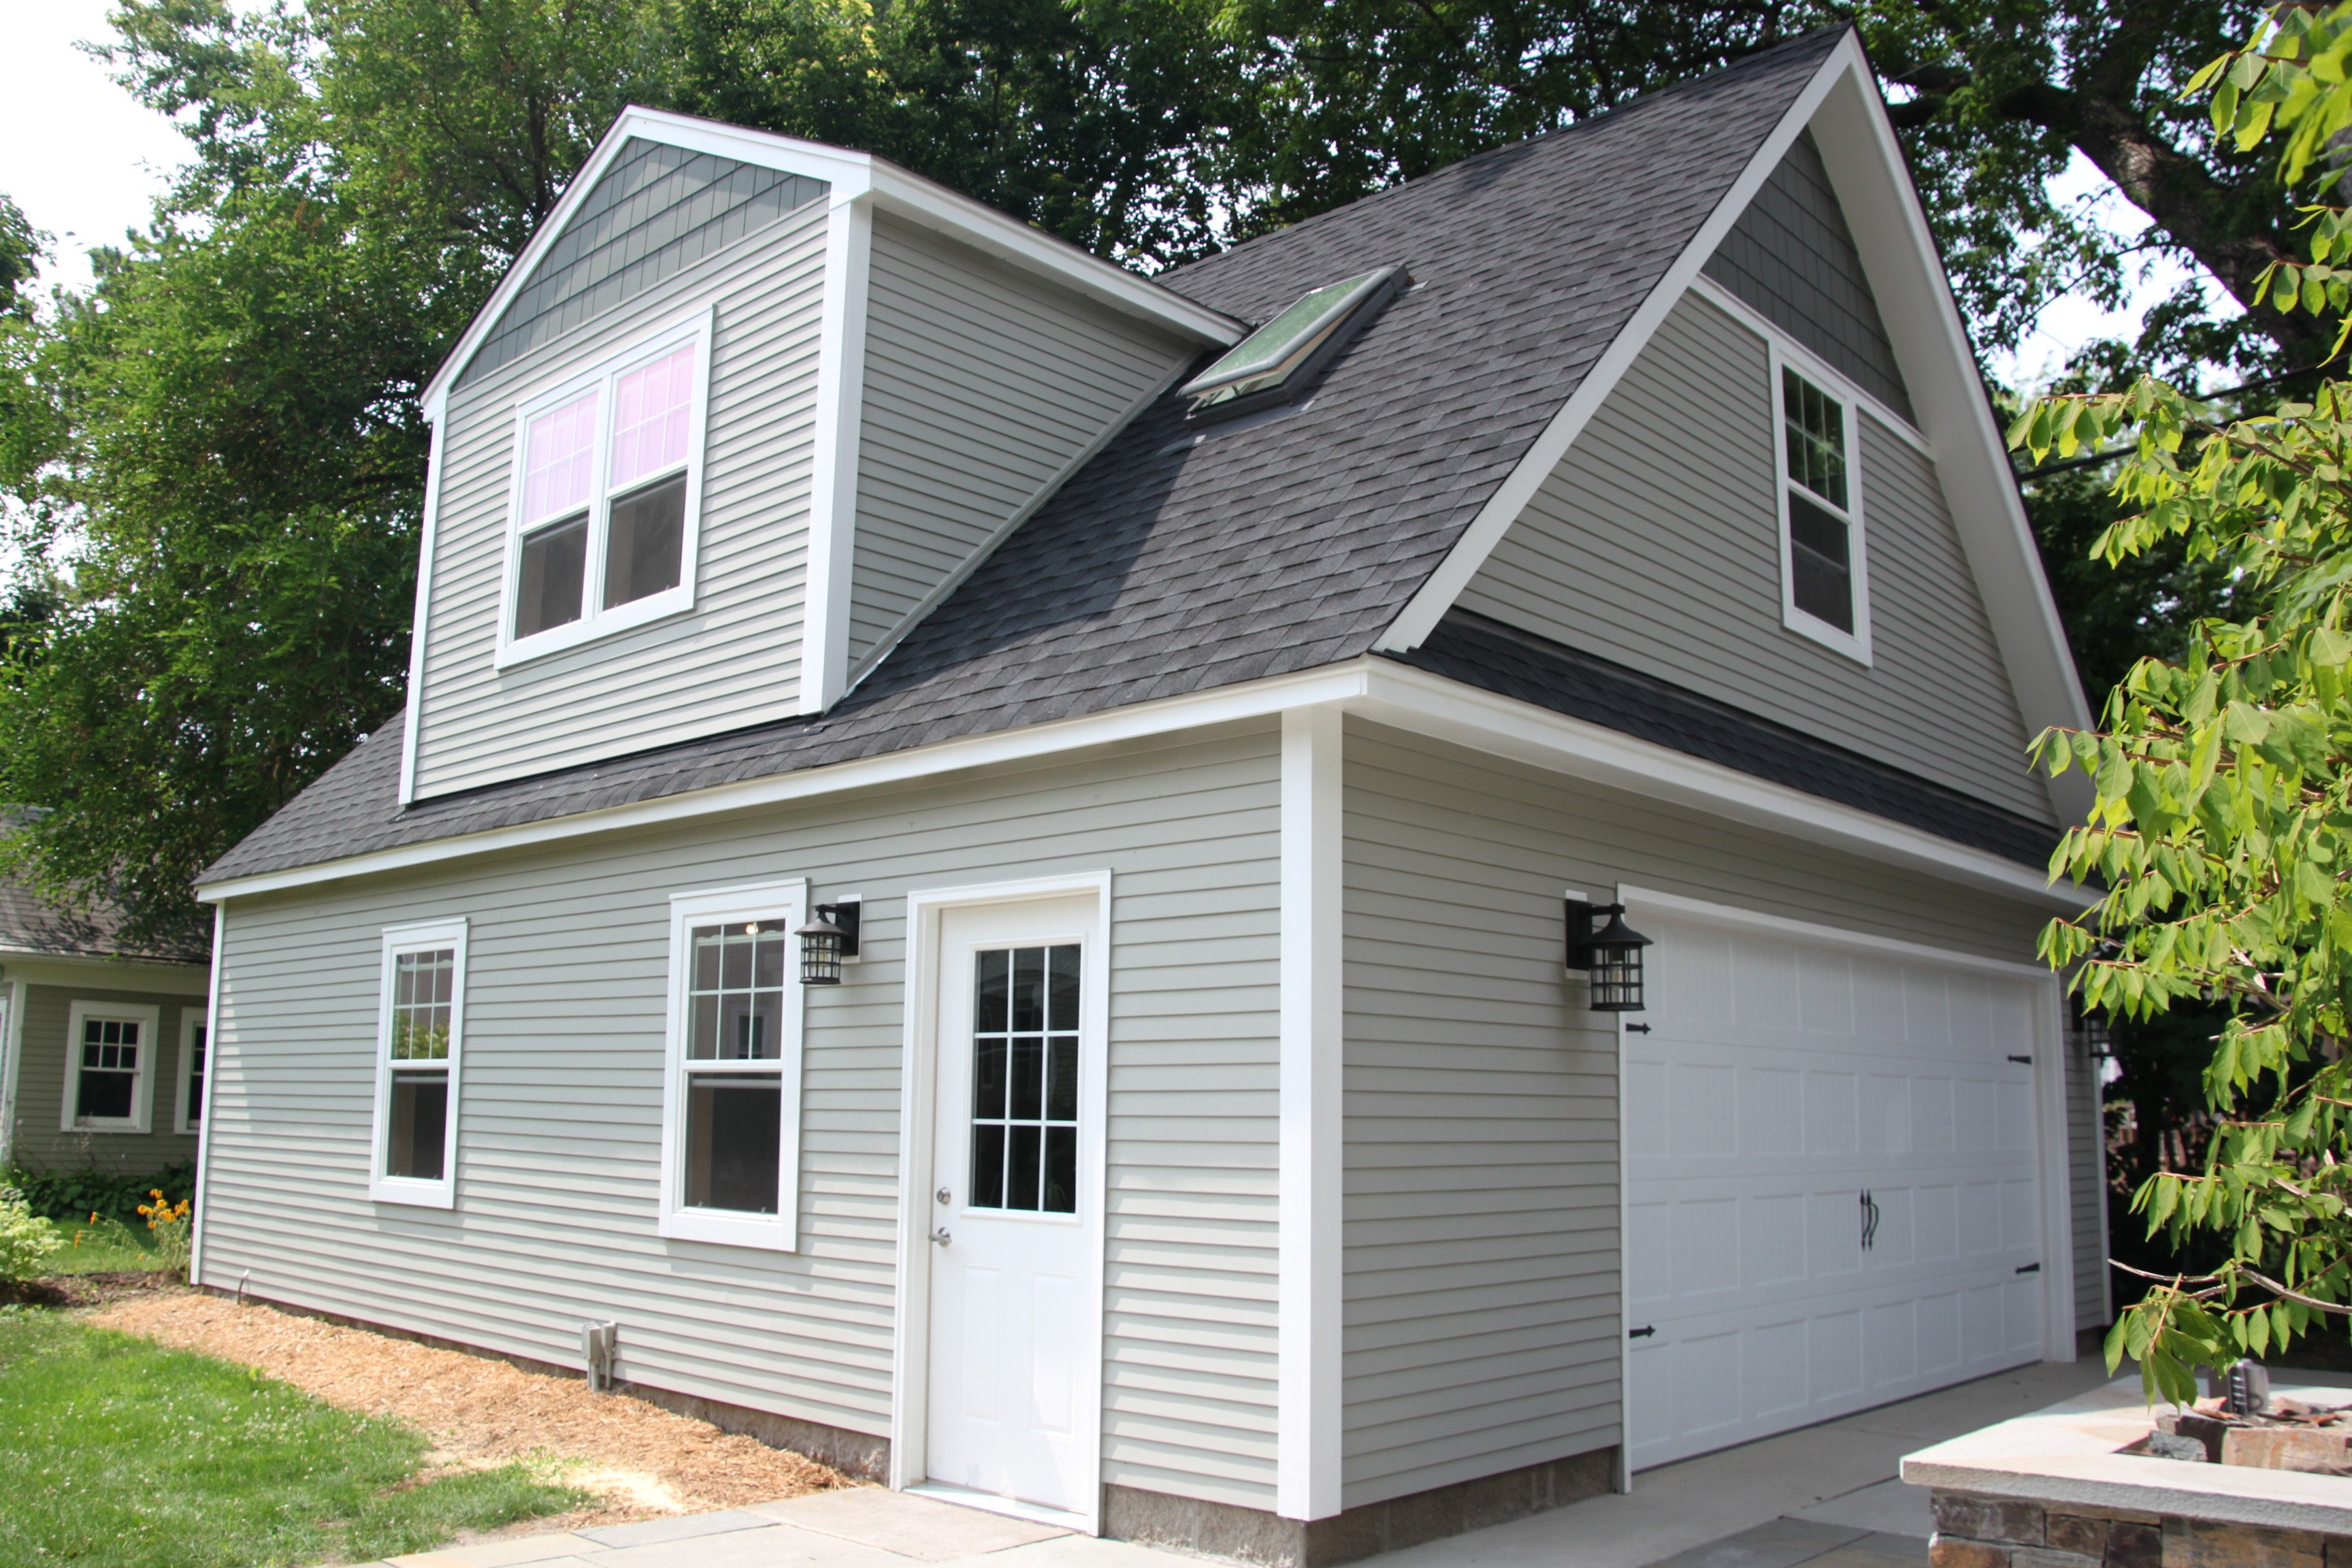 2 car 2 story garage using attic trusses and dormer for Cost to build a house in mn